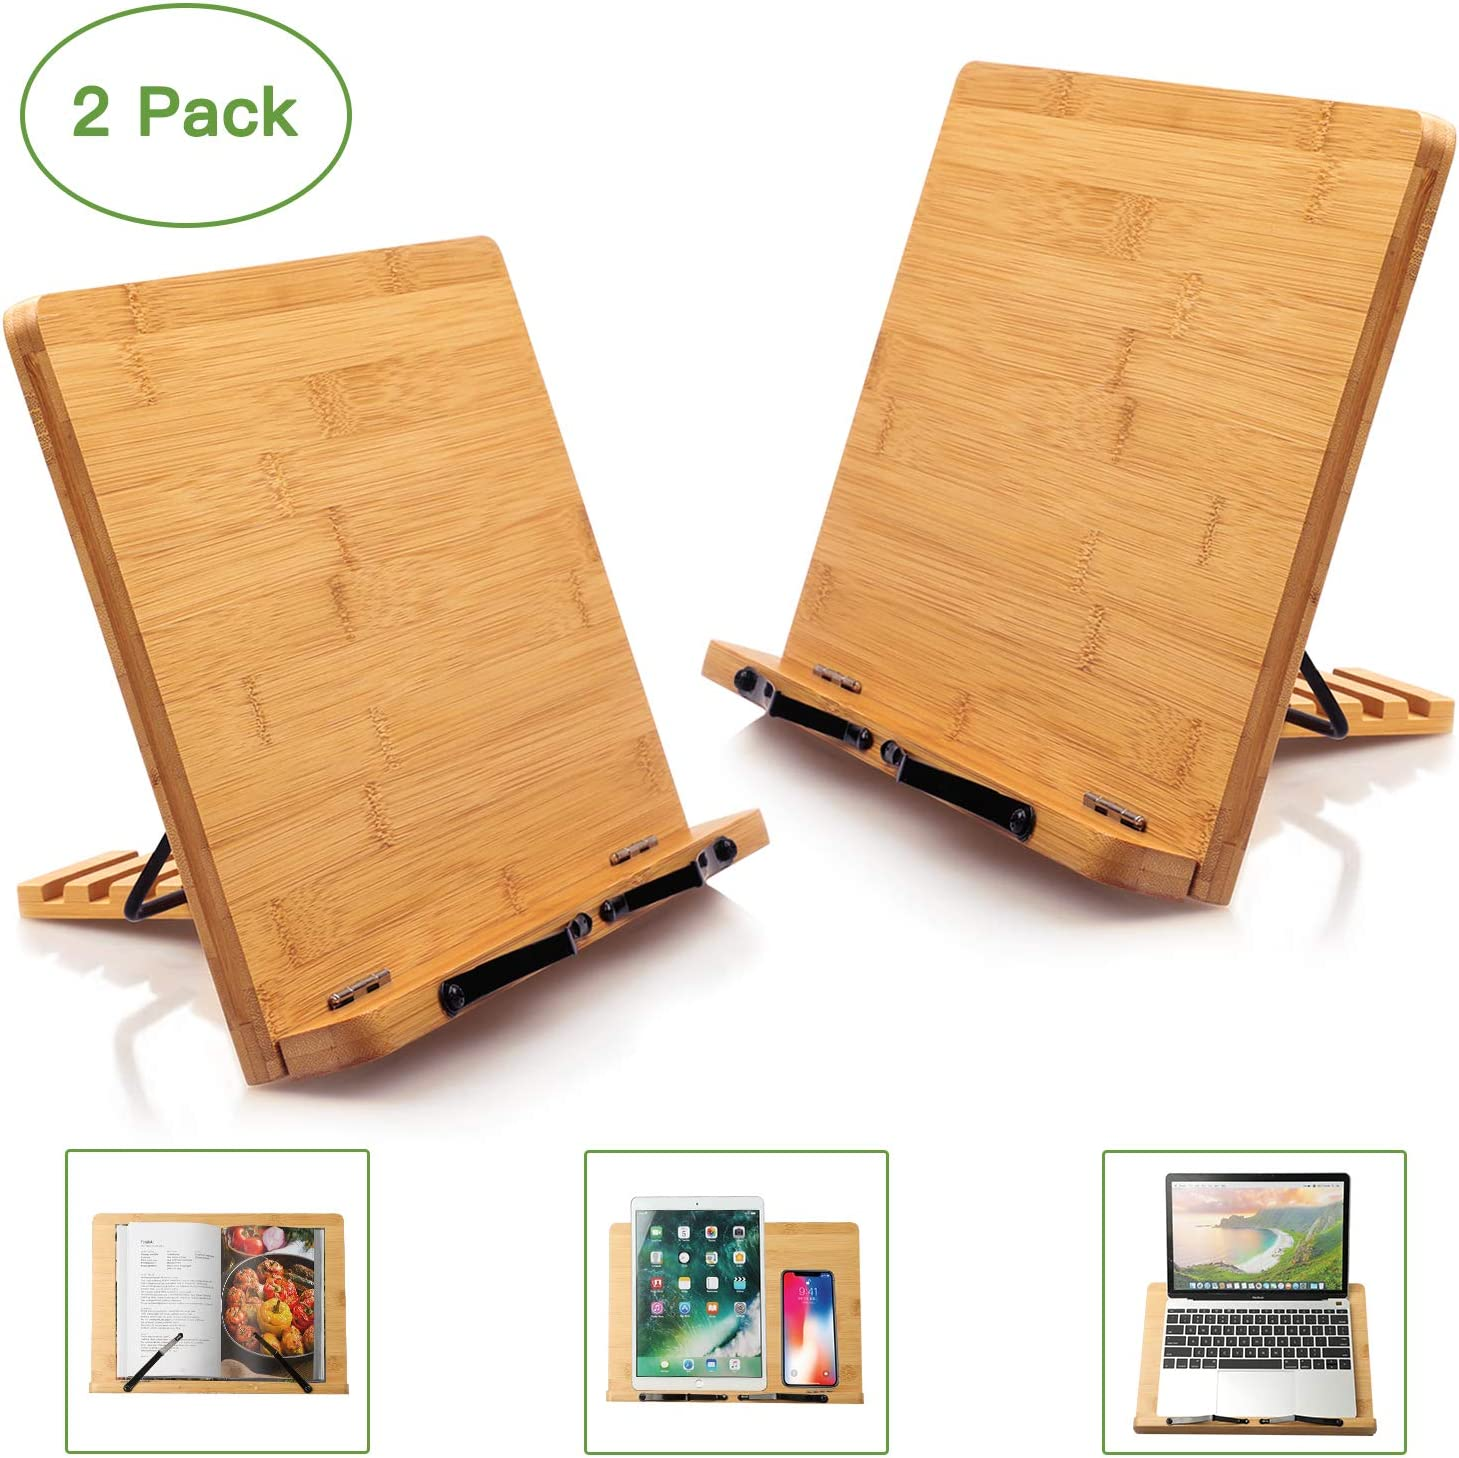 Laptop Magazine Music Book Recipe Bamboo Book Stand Cookbook Holder Desk Reading with 5 Adjustable Height Tablet 2 Pack Paper Page by Pipishell Portable and Foldable Bookstands for Textbook